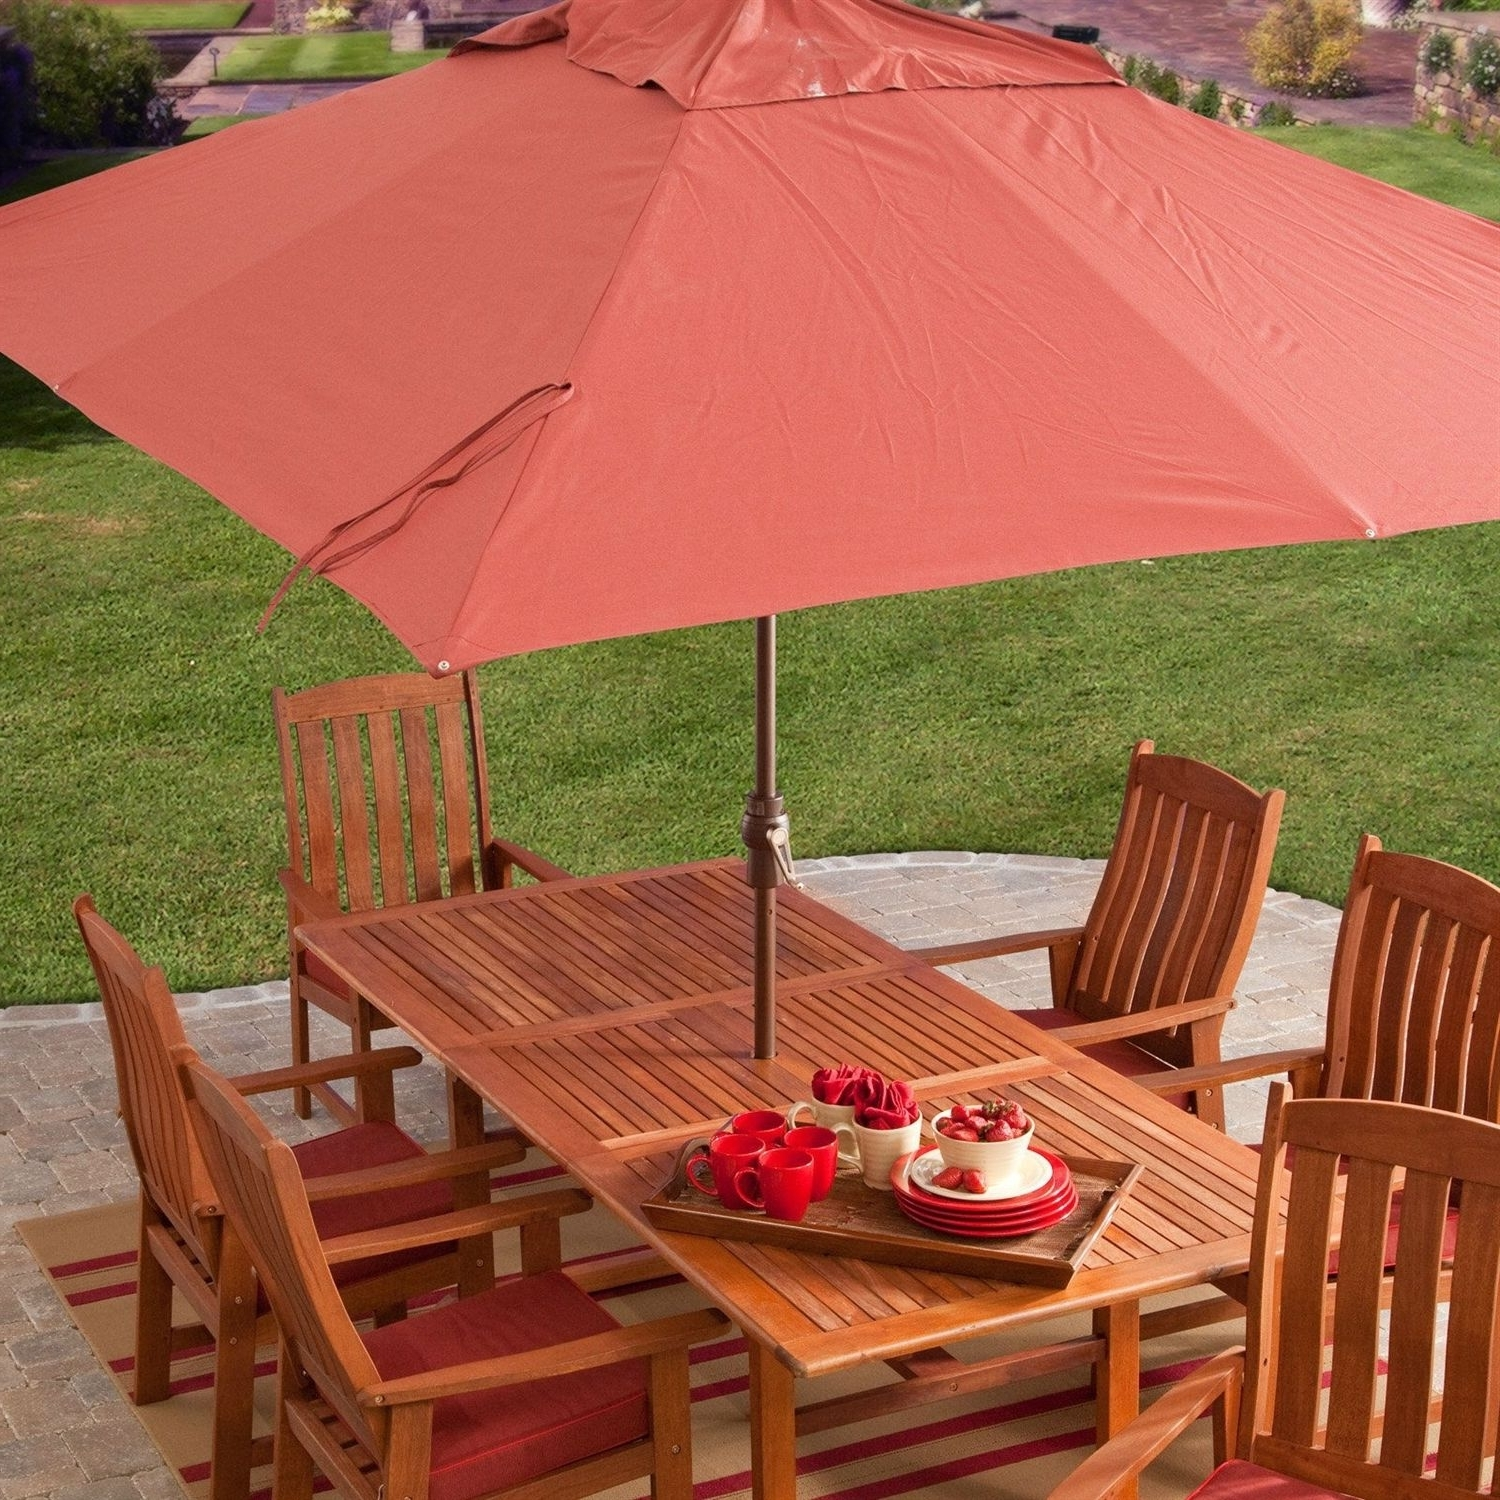 Rectangle Patio Umbrellas Intended For Latest 8 X 11 Ft Rectangle Patio Umbrella With Red Orange Terracotta Canopy (Gallery 11 of 20)